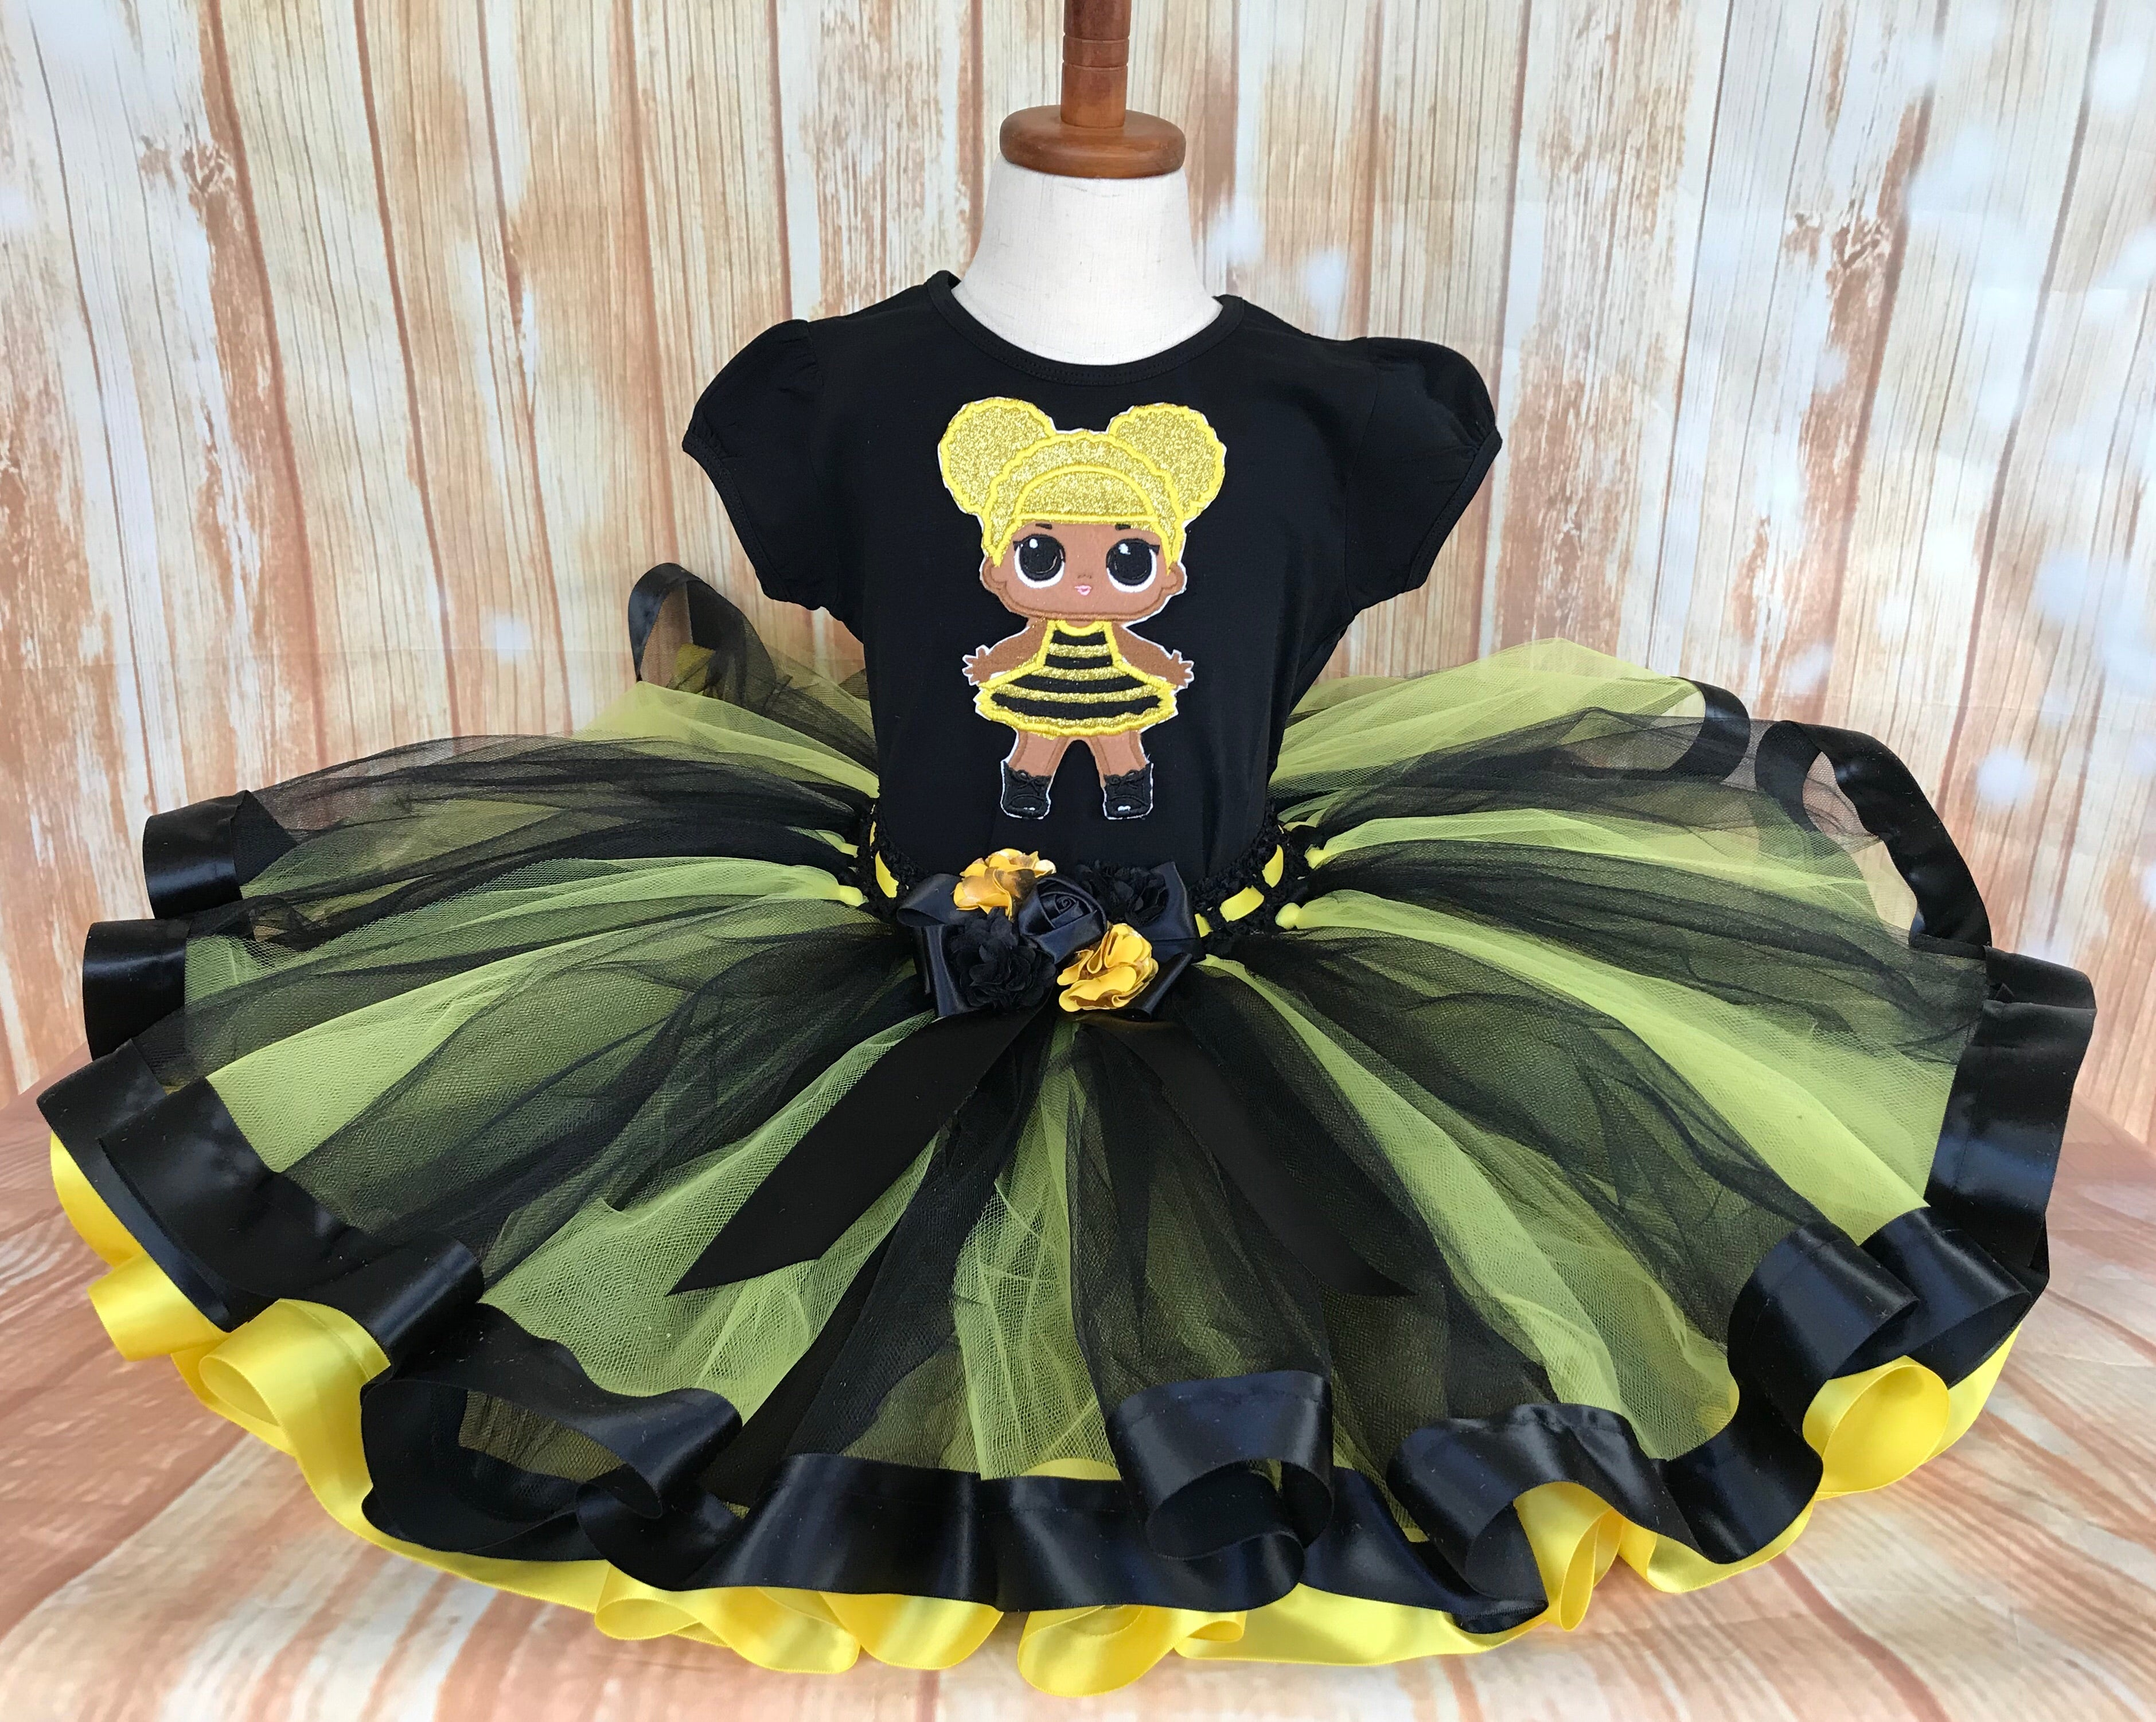 queen bee birthday lol birthday outfit queen bee l.o.l doll l.o.l surprise birthday shirt birthday outfits for girls lol queen bee L.o.l doll birthday outfit